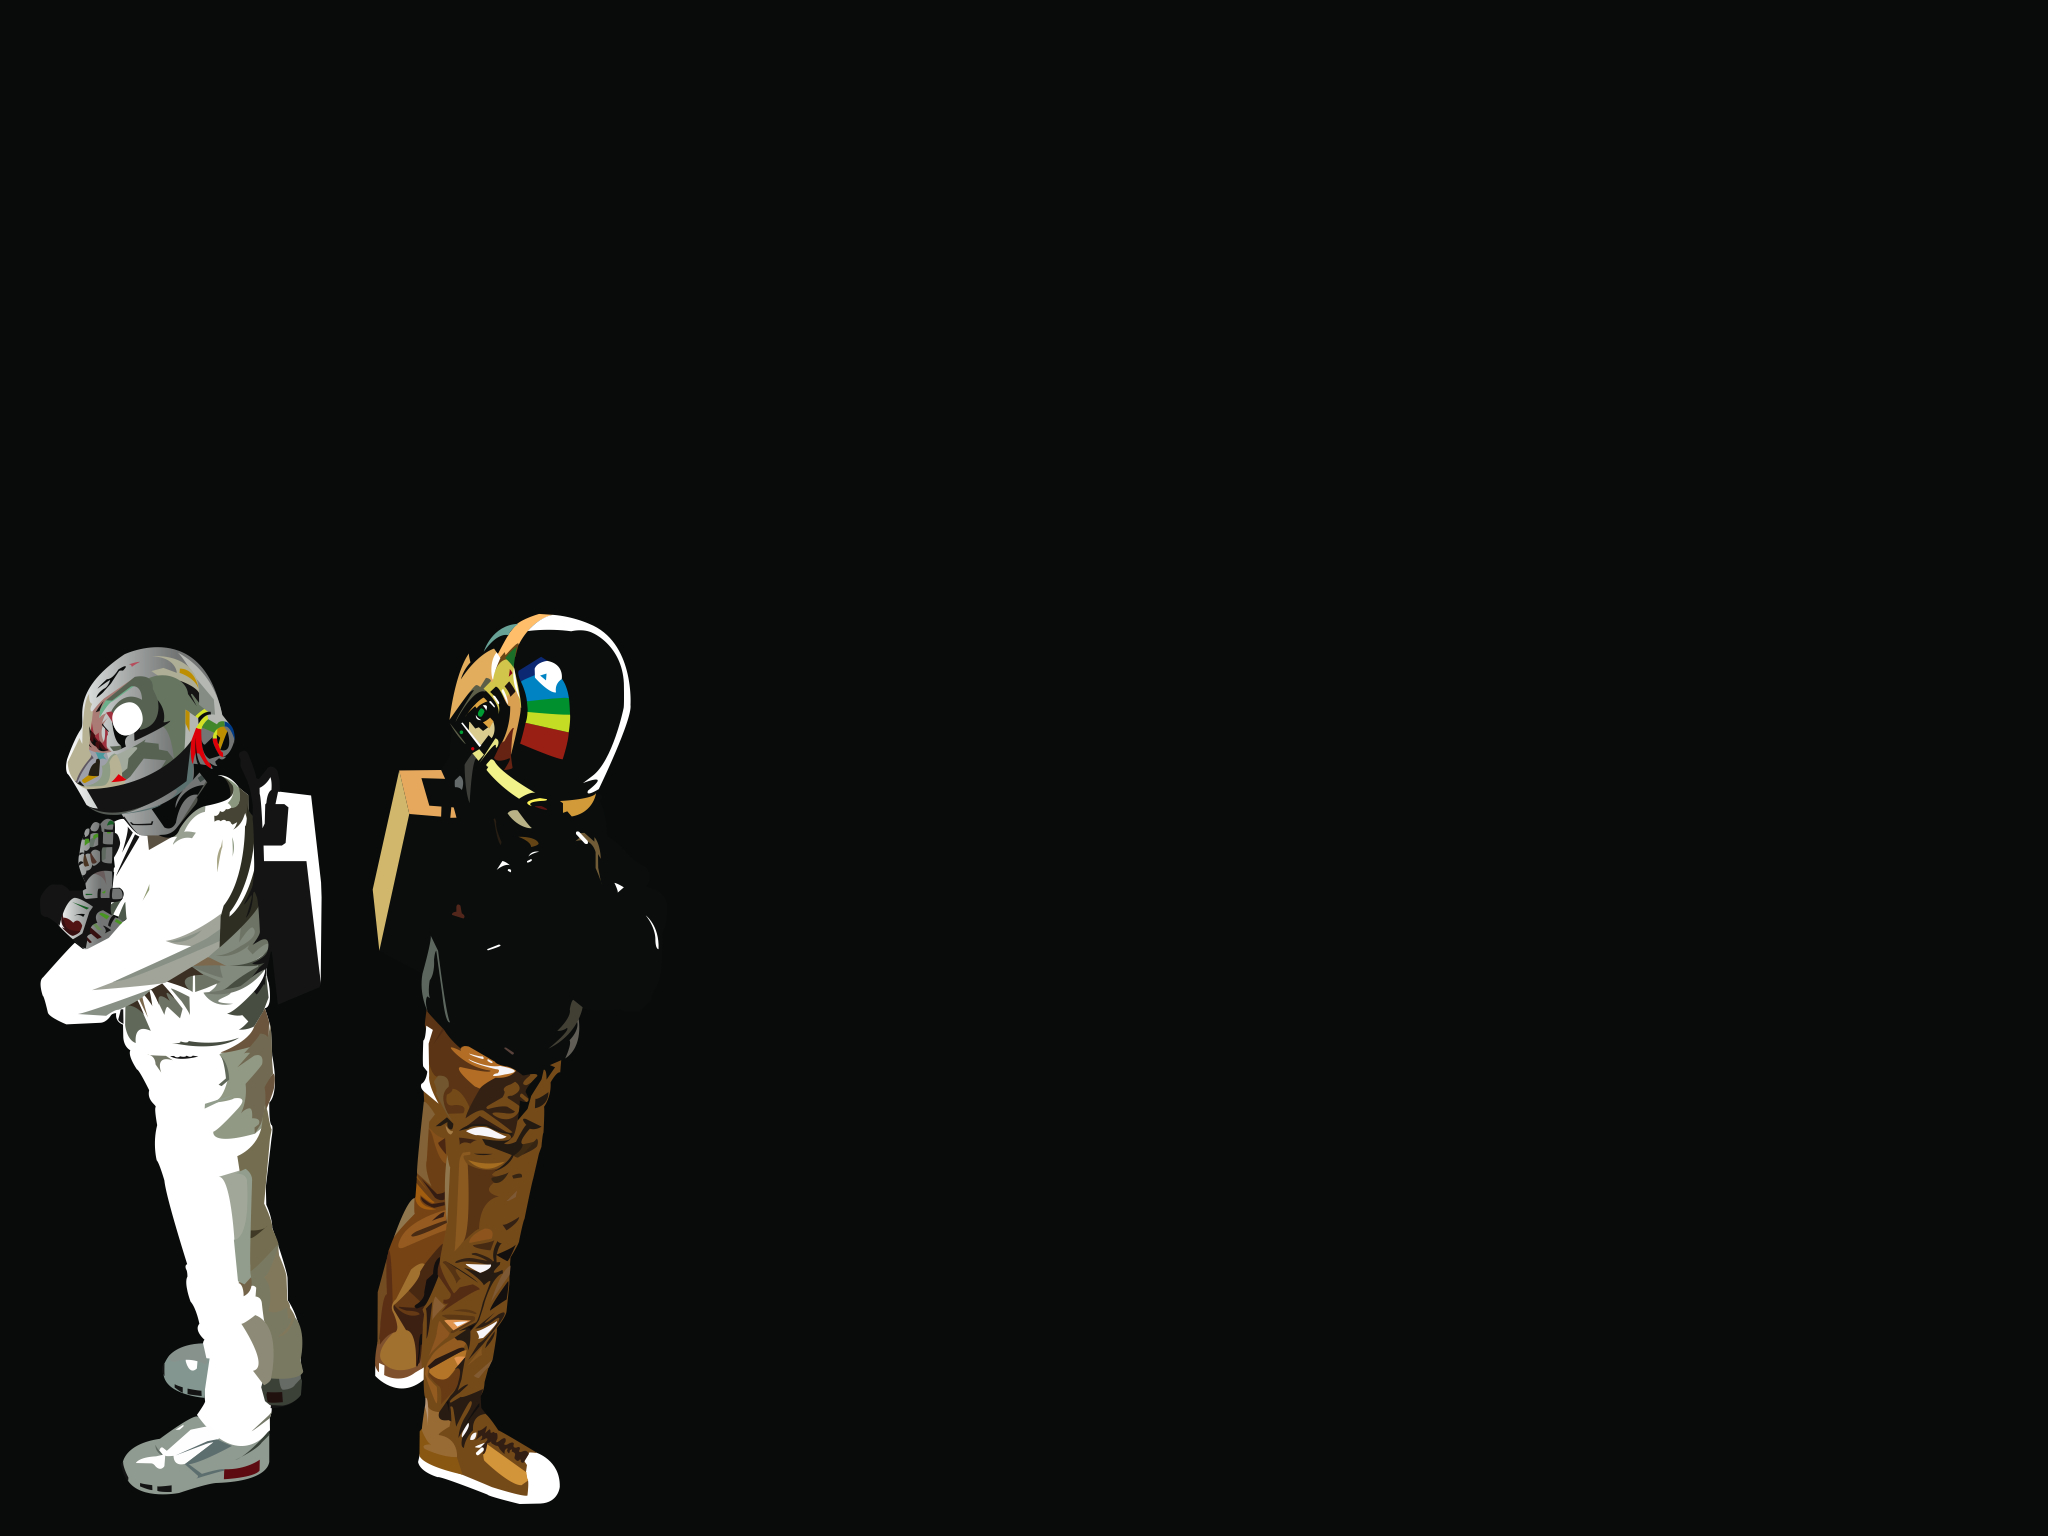 Iphone D Edm Daft Punk Wallpapers High Quality Download Free